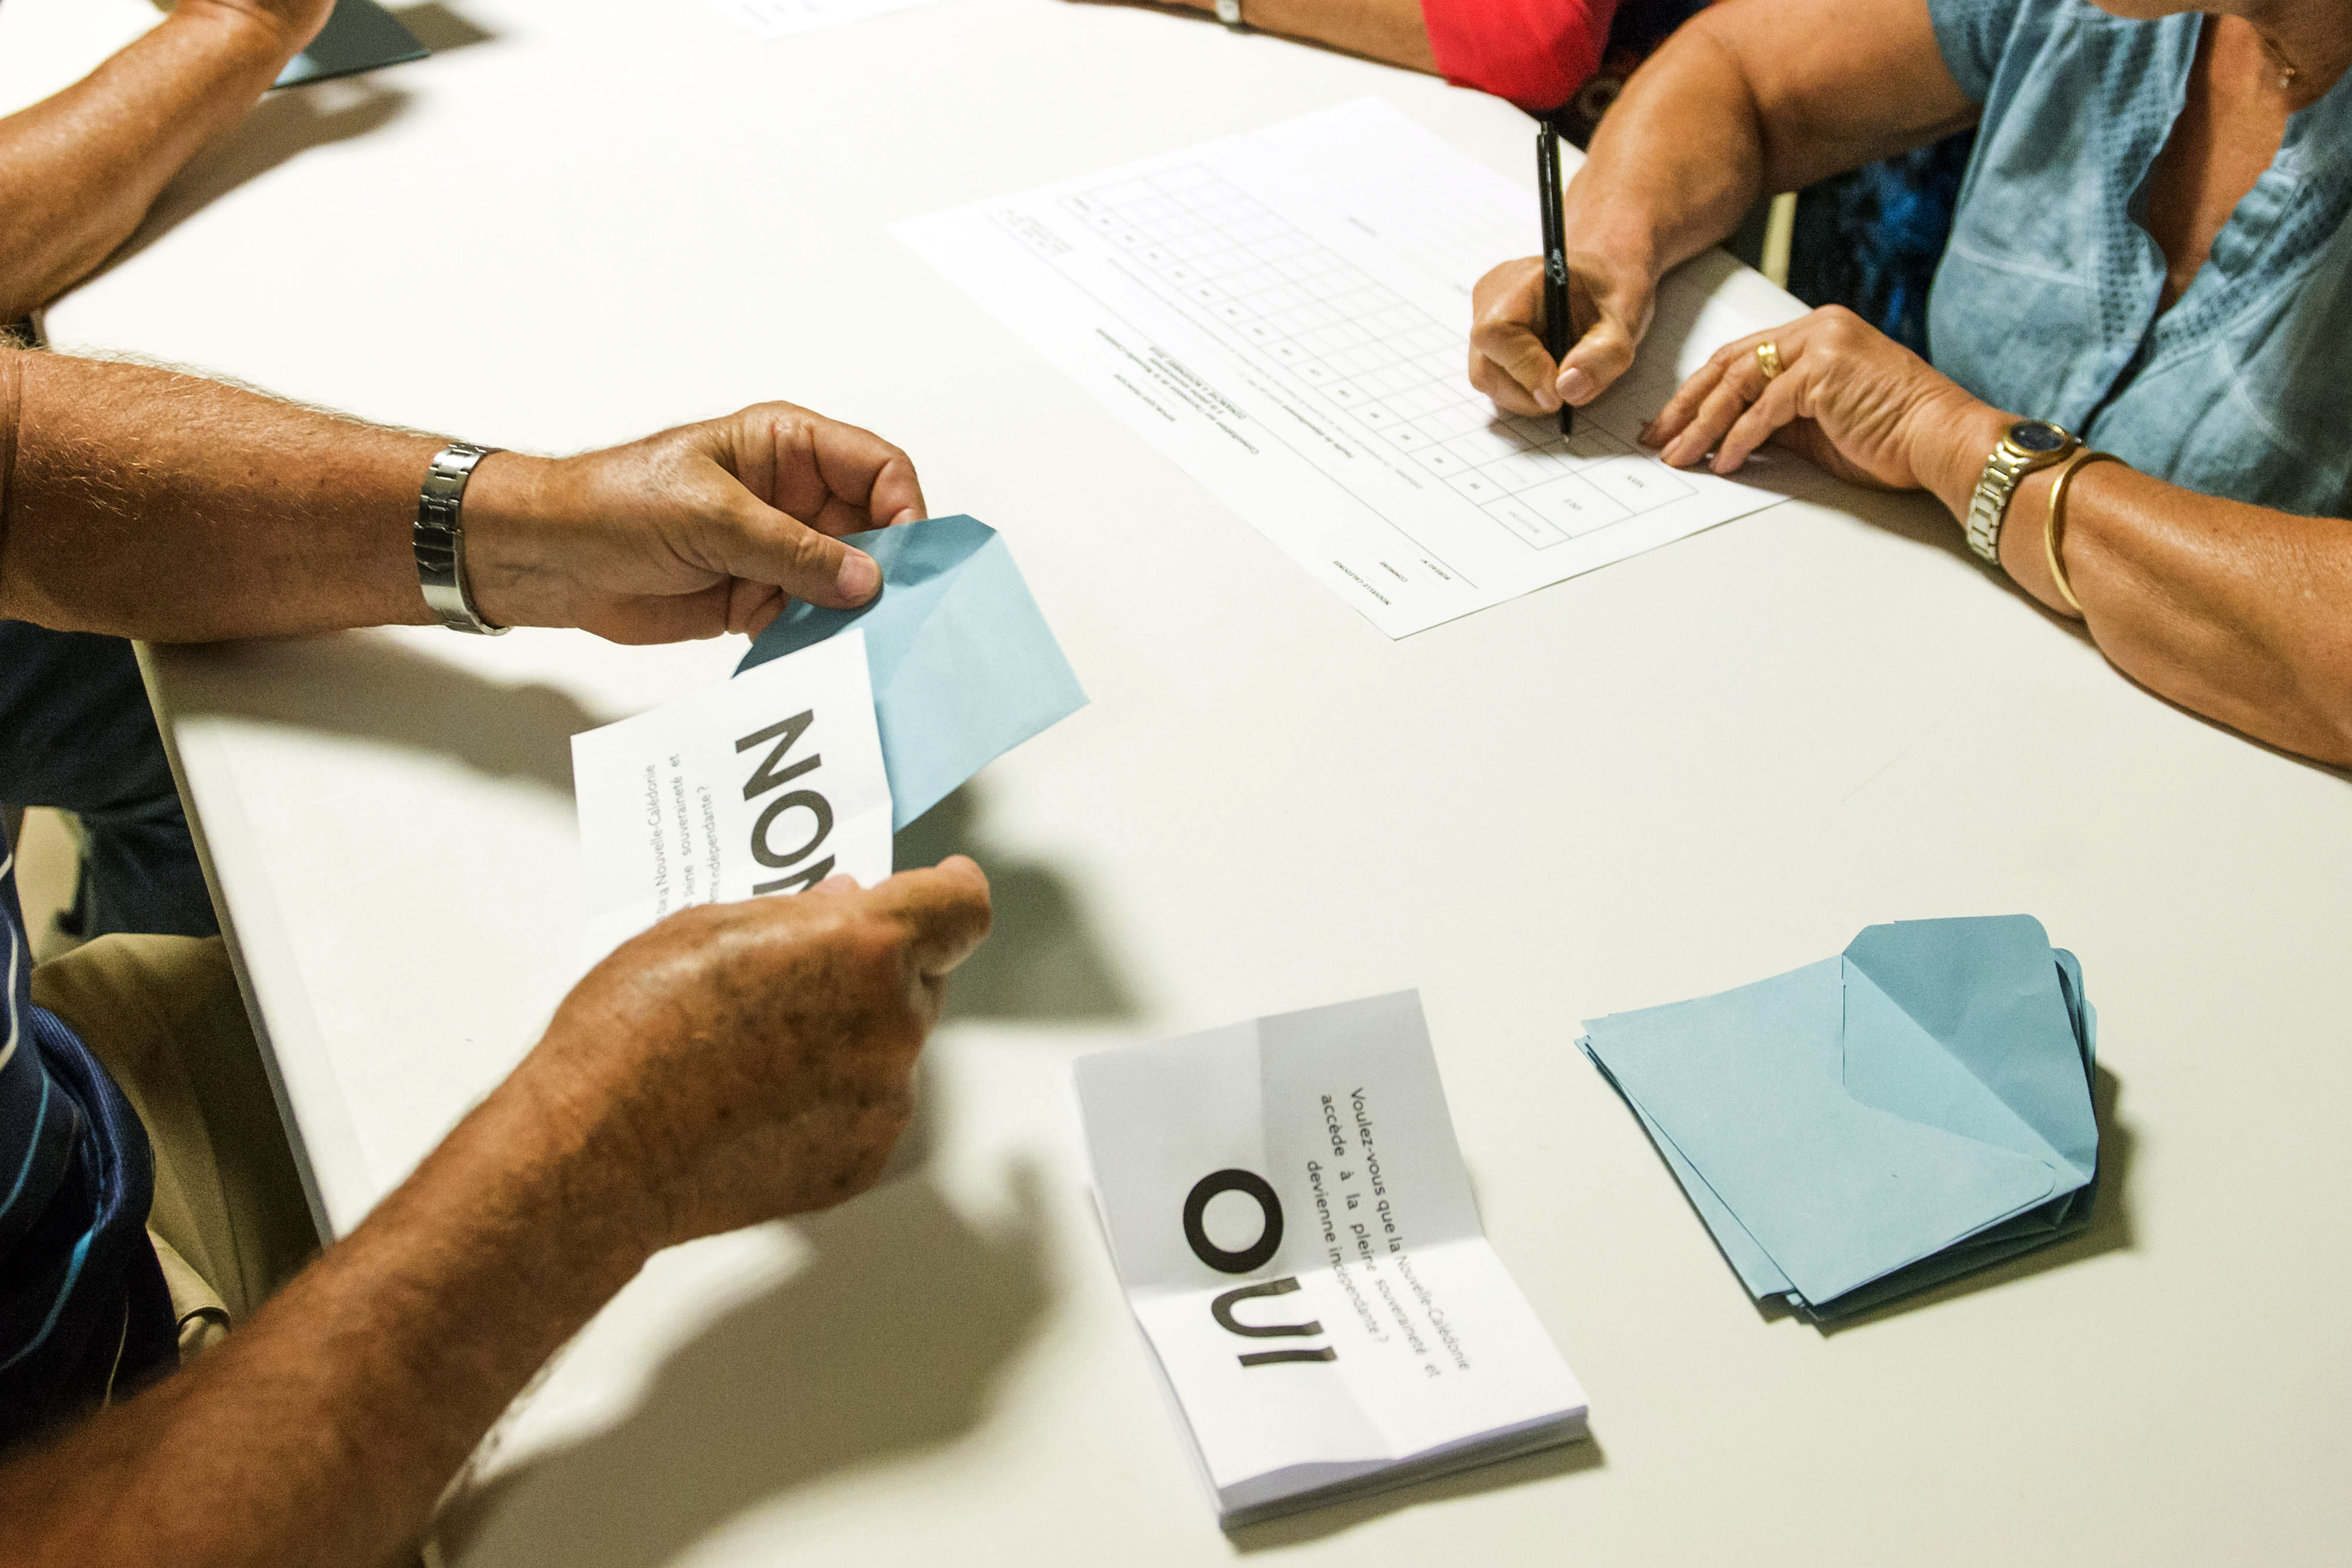 FILE - In this Nov. 4, 2018 file photo, polling station officials count the votes as part of the independence referendum in Noumea, the New Caledonia's capital. Voters in New Caledonia, a French archipelago in the South Pacific, are to choose whether they want independence from France in a referendum that marks a milestone in a three-decades-long decolonization effort. The vote on Sunday, Oct. 4, 2020 is key to determine the future of the archipelago east of Australia and its 270,000 inhabitants, including the native Kanaks, who once suffered from strict segregation policies, and the descendants of European colonizers. (AP Photo/Mathurin Derel, File)